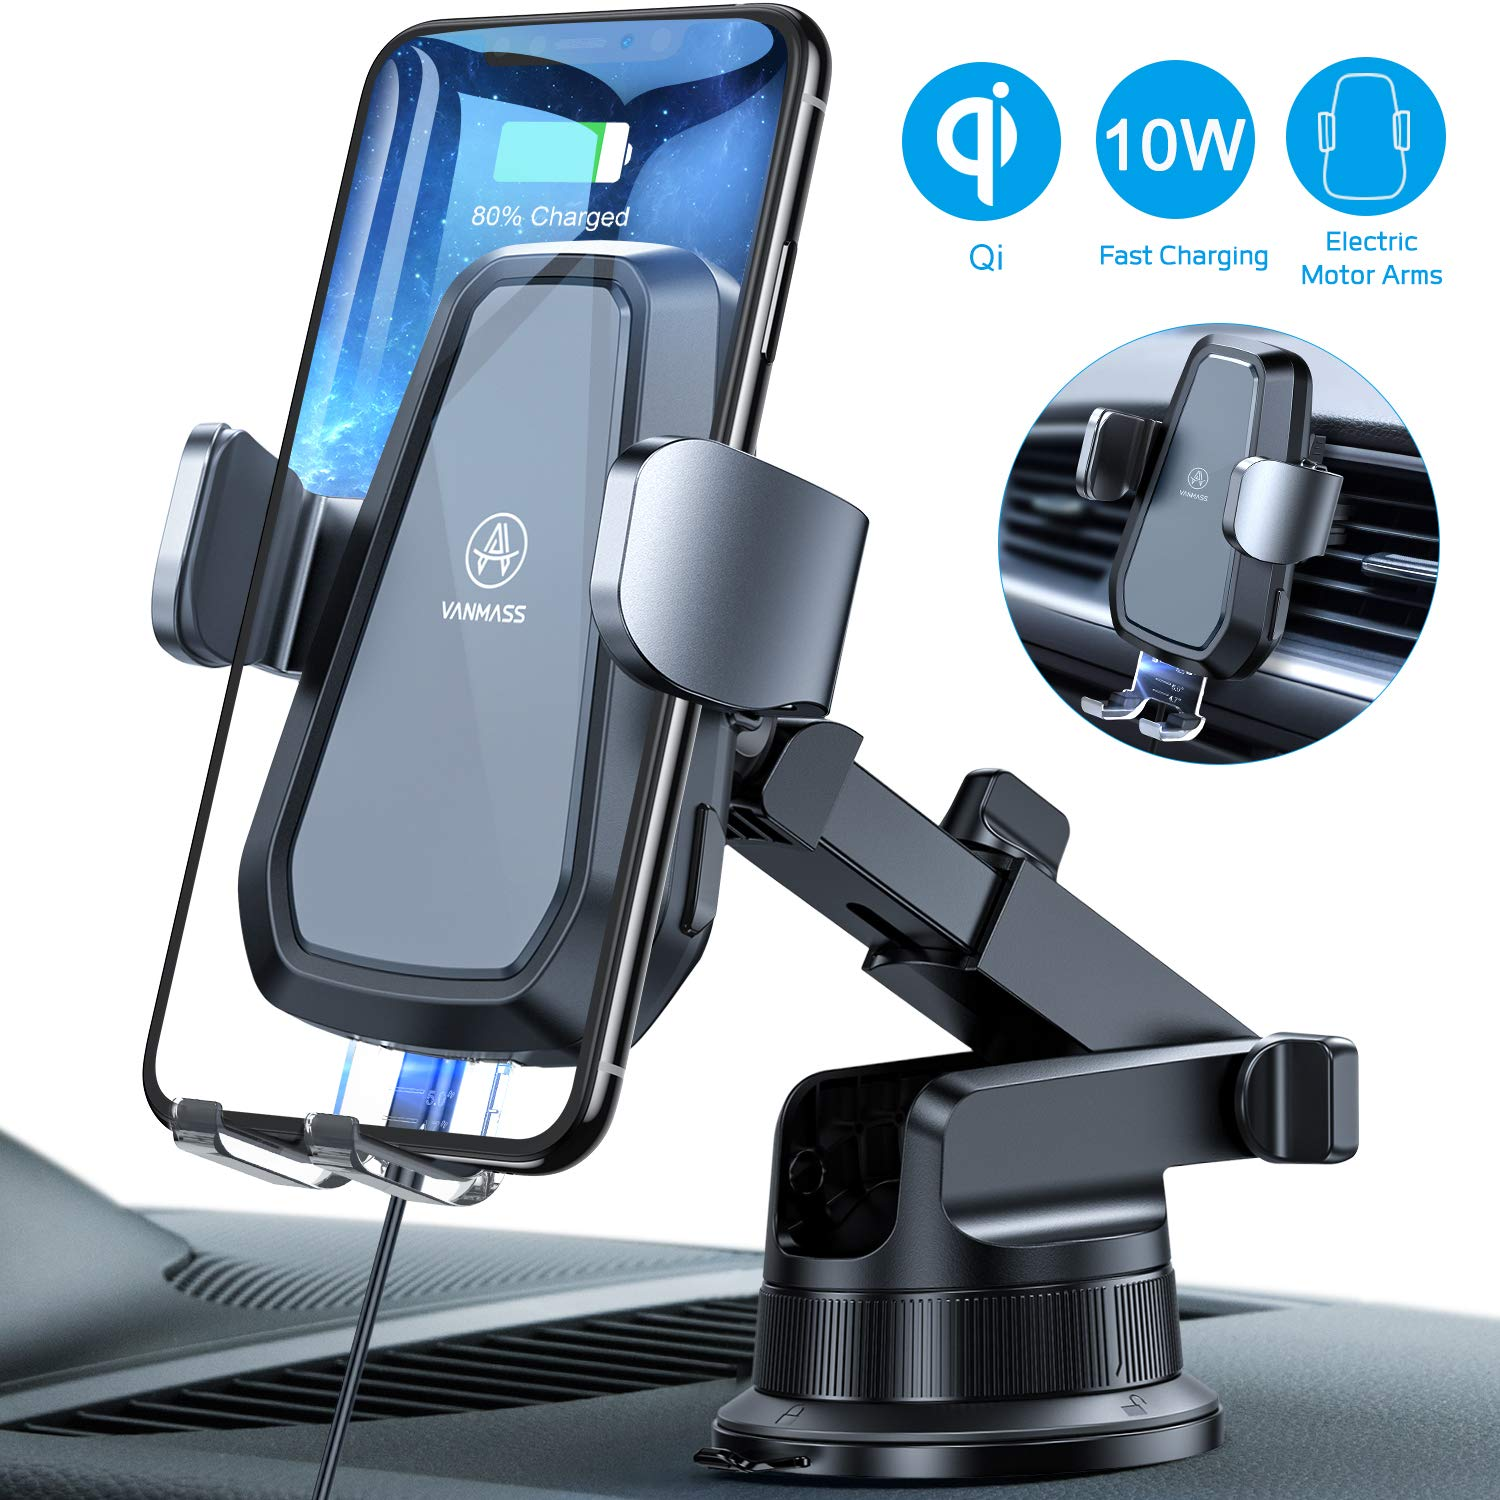 VANMASS Wireless Car Charger Mount, Automatic Clamping Qi 10W 7.5W Fast Charging Car Mount, Dashboard Air Vent Phone Holder Compatible with iPhone 11 Pro Max Xs X 8, Samsung S10 S9 Note10, Rotate Lock by VANMASS